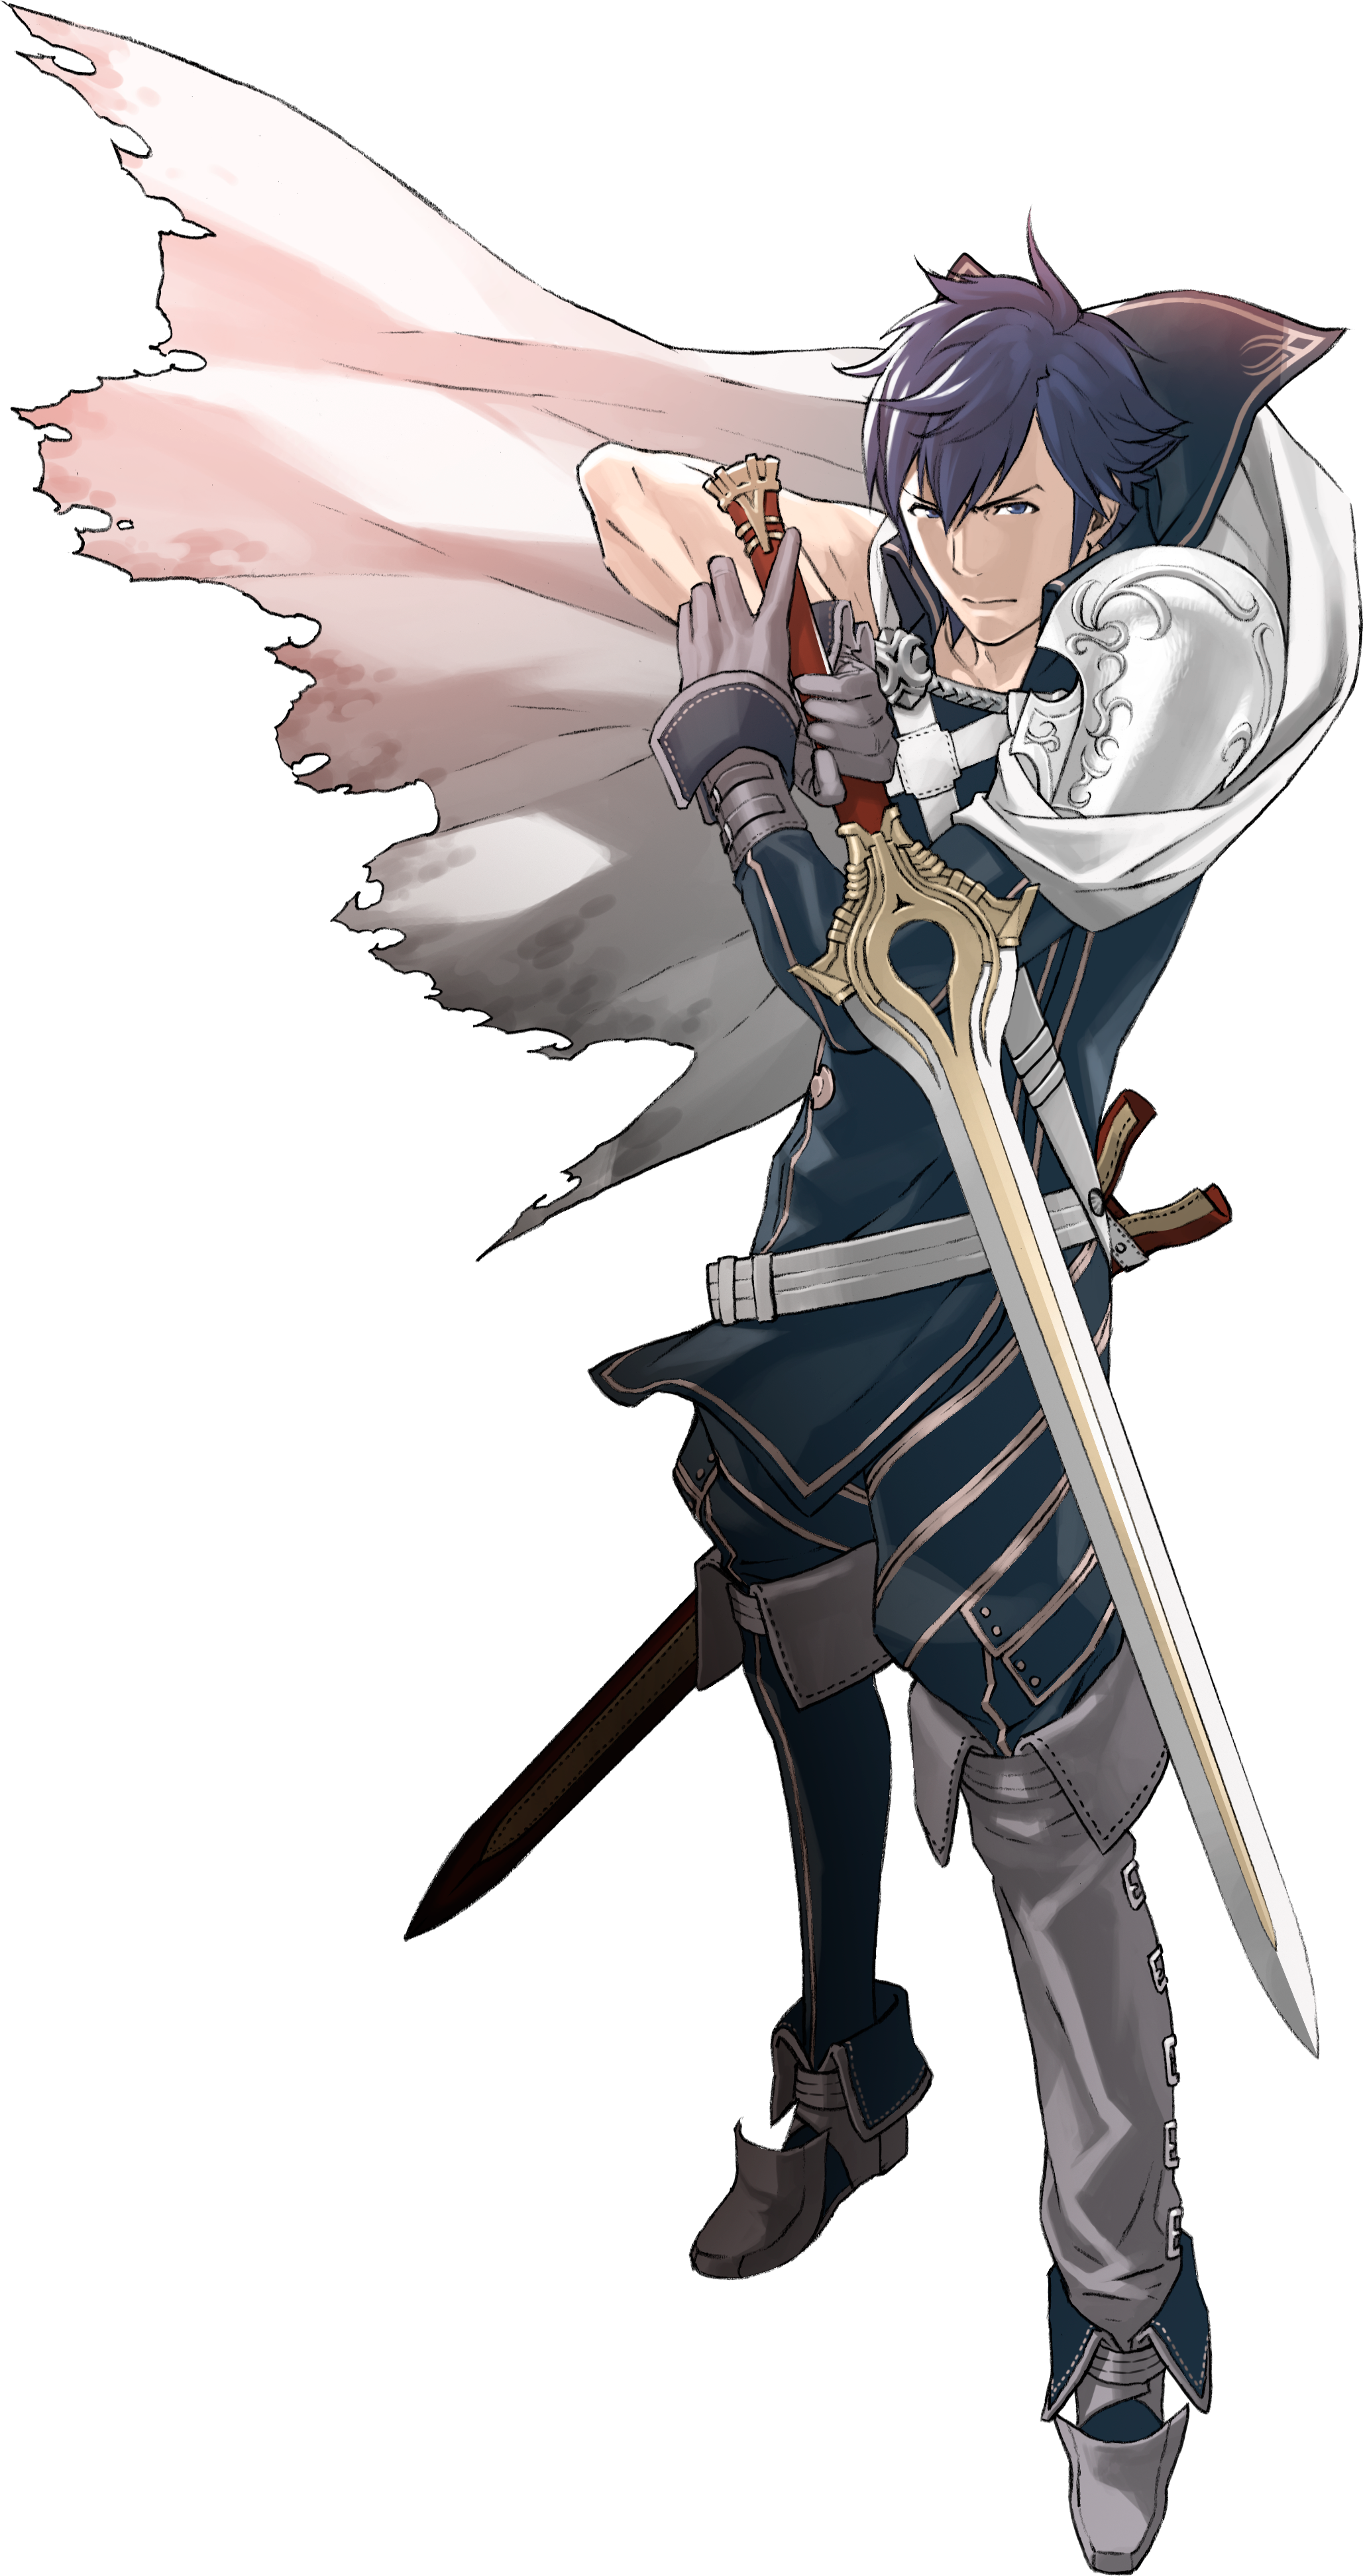 Chrom | Fire Emblem Wiki | FANDOM powered by Wikia